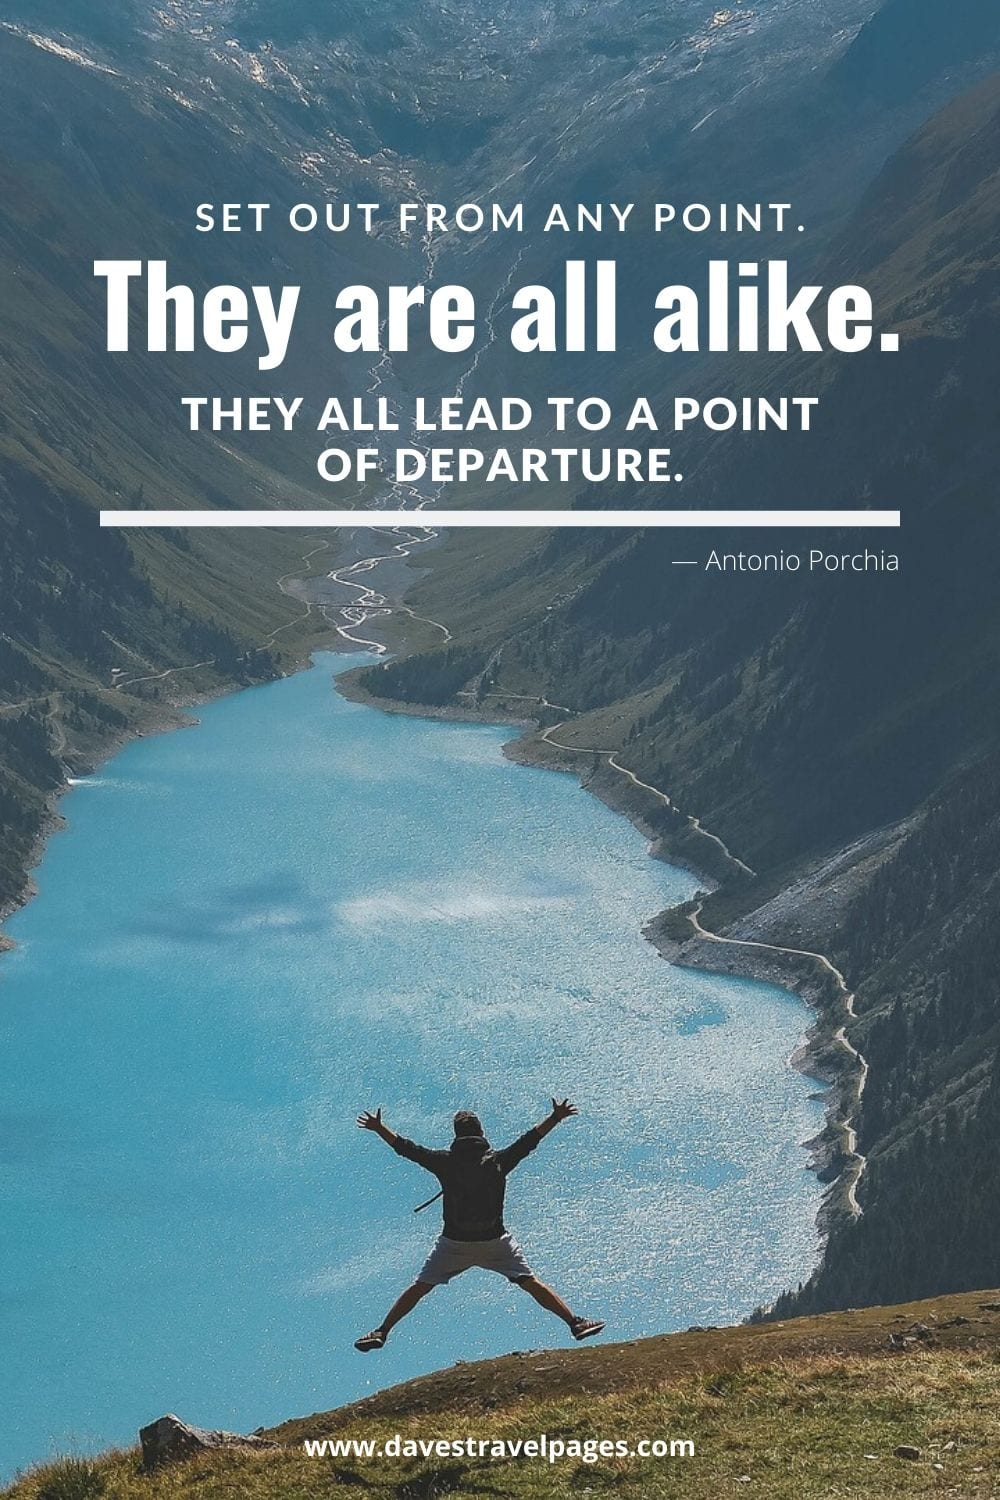 "Best travel captions - Set out from any point. They are all alike. They all lead to a point of departure.""― Antonio Porchia"